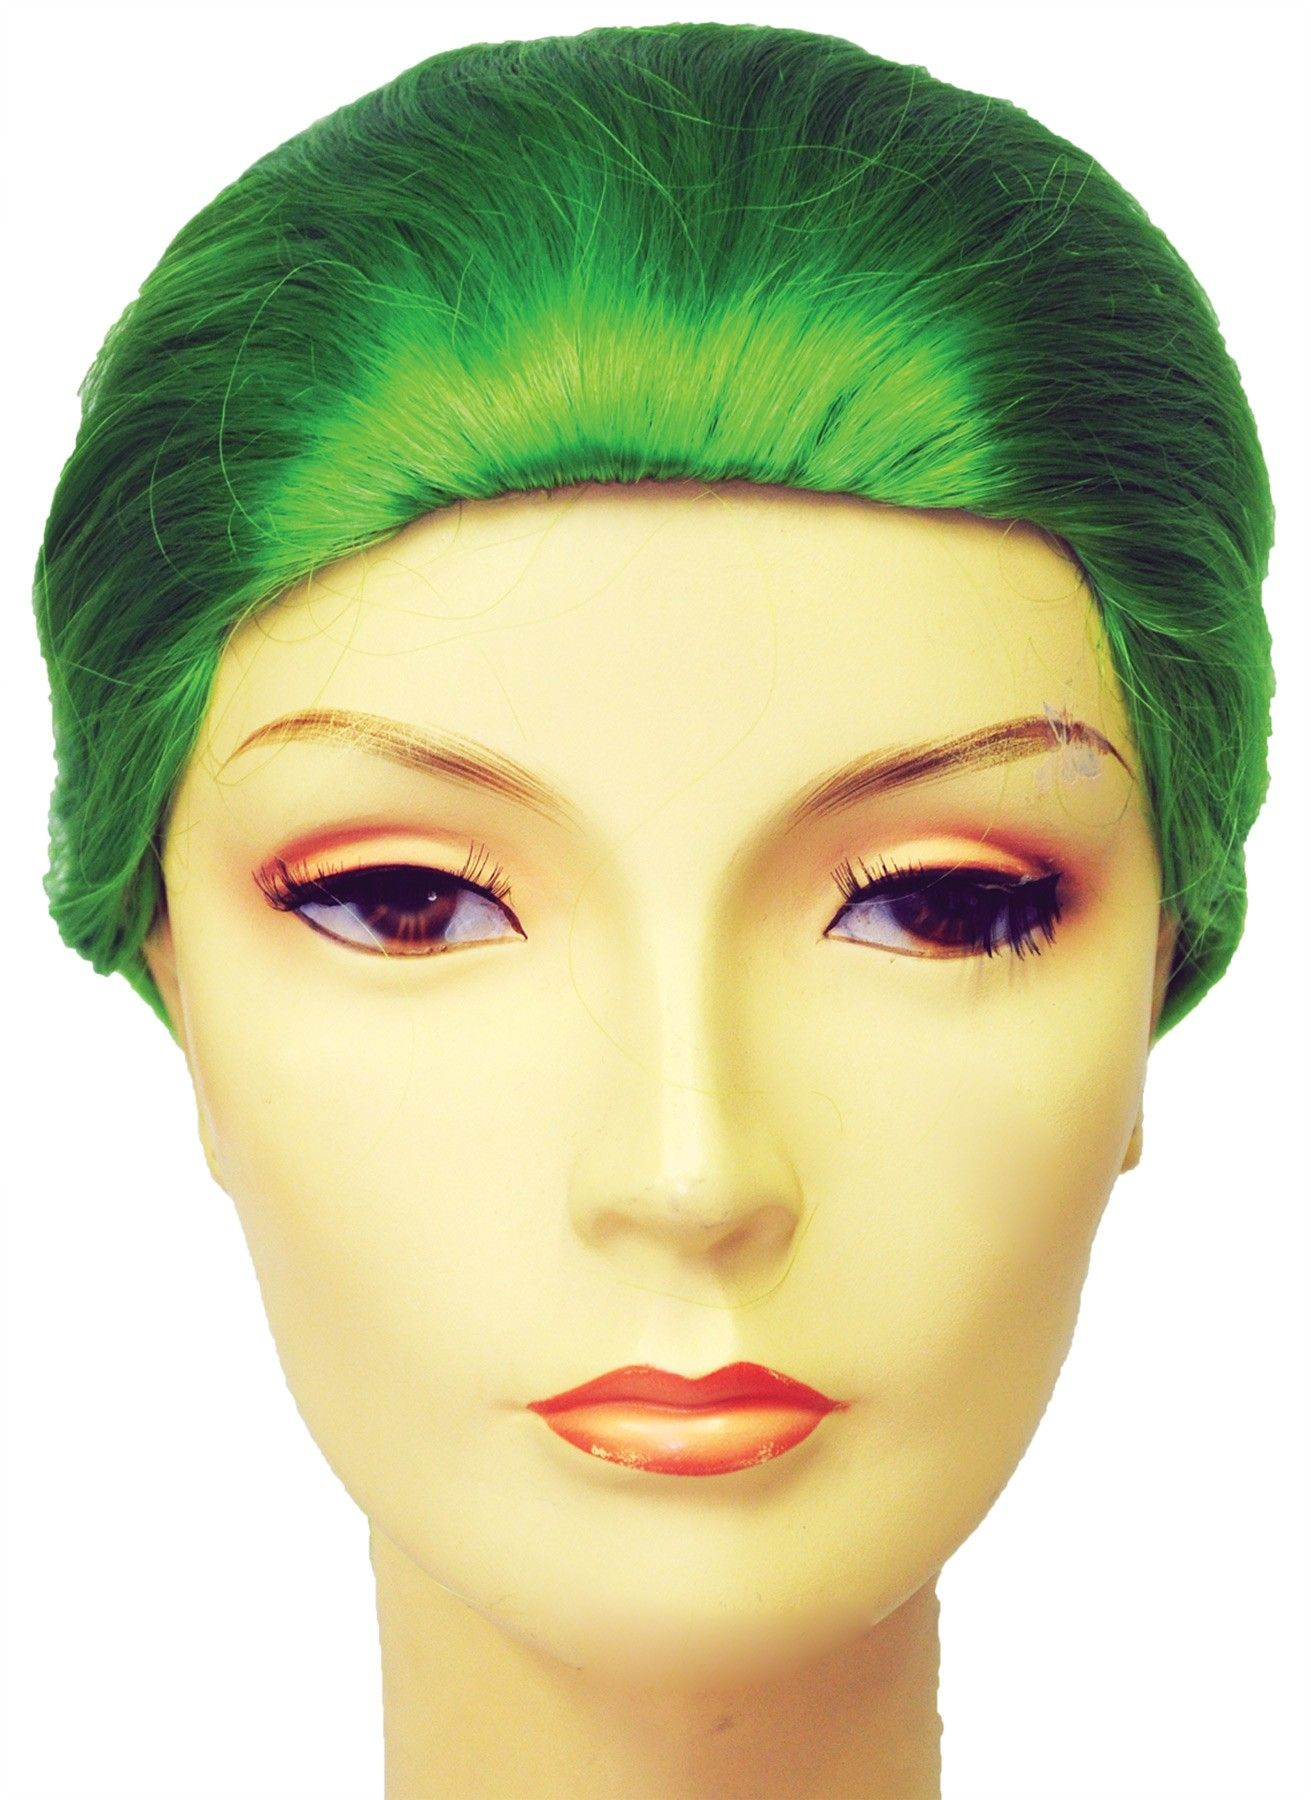 Showgirl 340 B Green Kaf4 Green wig, Buy halloween